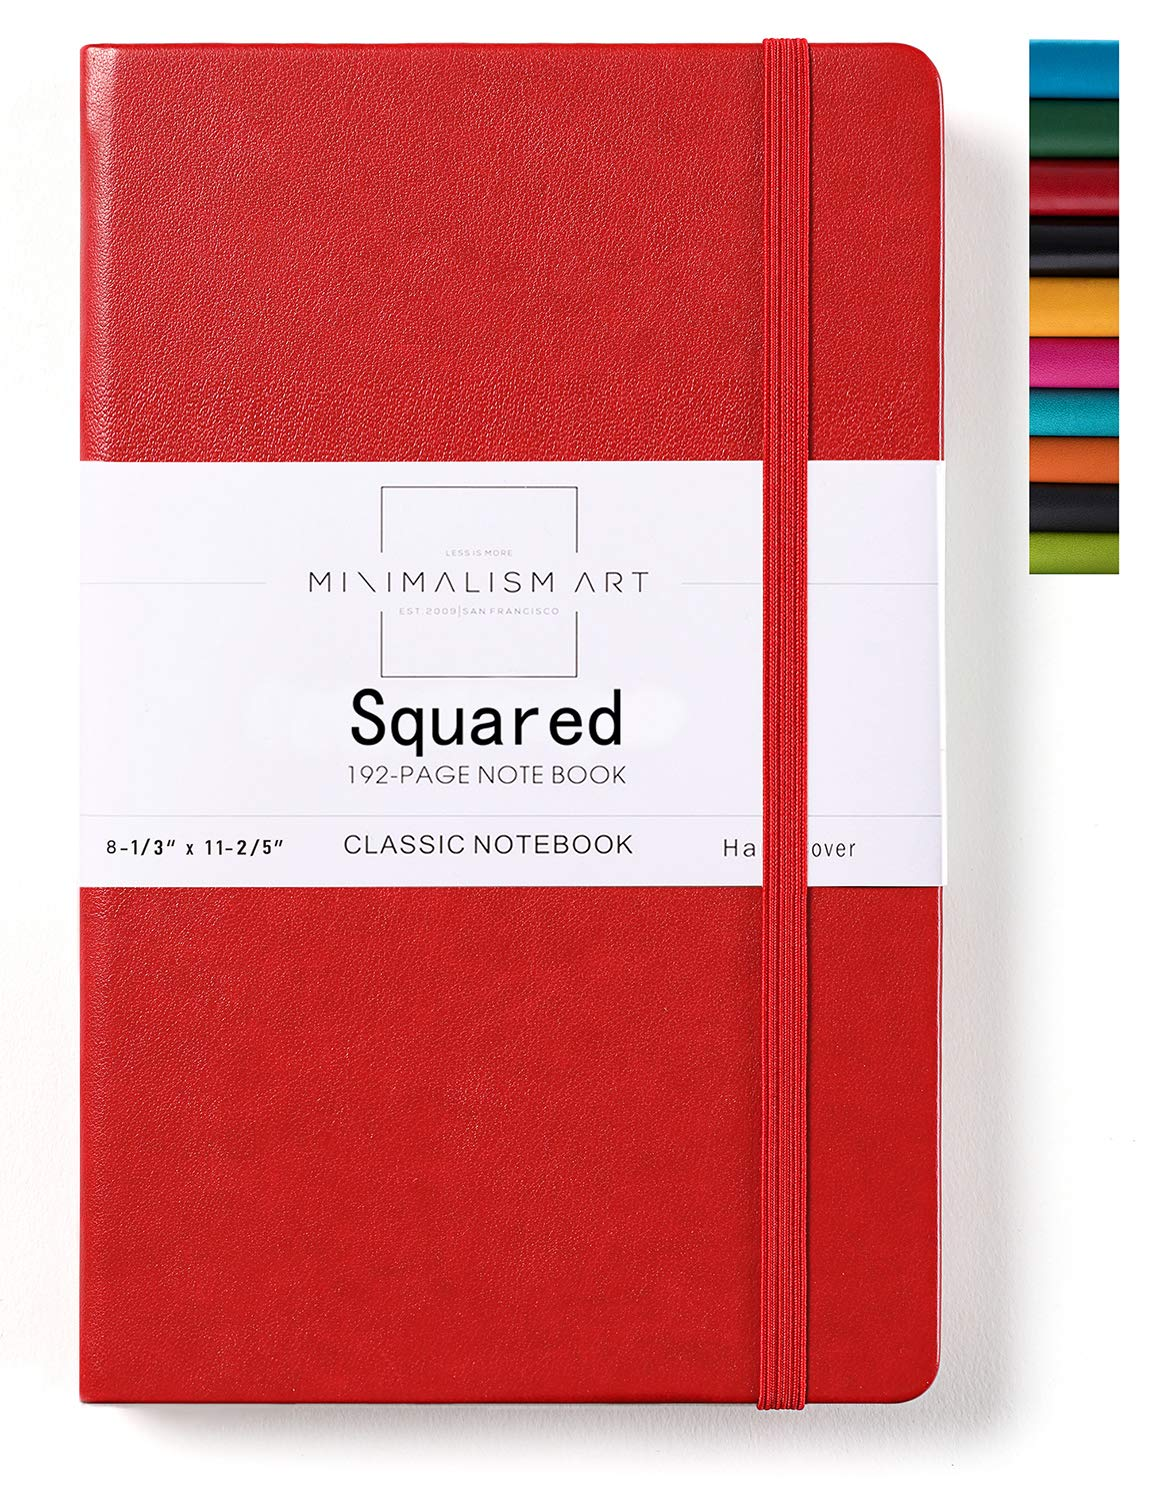 Minimalism Art, Classic Notebook Journal, A4 Size 8.3 X 11.4 inches, Red, Squared Grid Page, 192 Pages, Hard Cover, Fine PU Leather, Inner Pocket, Quality Paper-100gsm, Designed in San Francisco